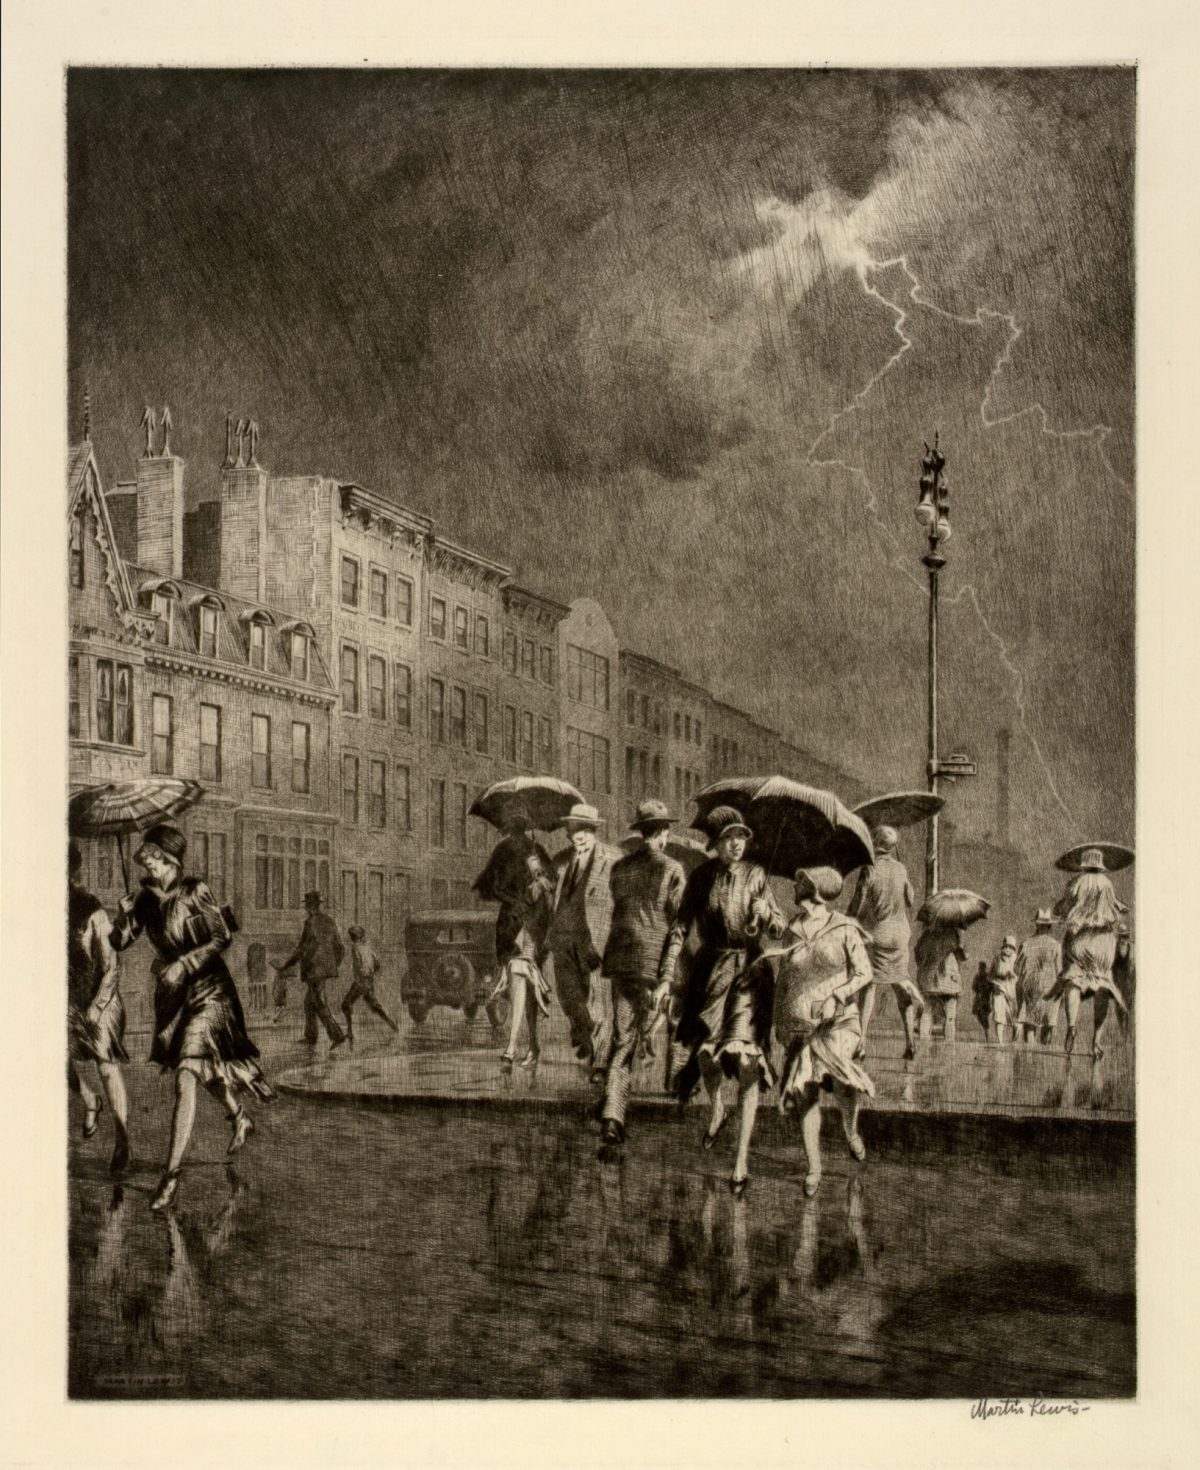 BREAK IN THE THUNDERSTORM Martin Lewis 1930 drypoint on paper